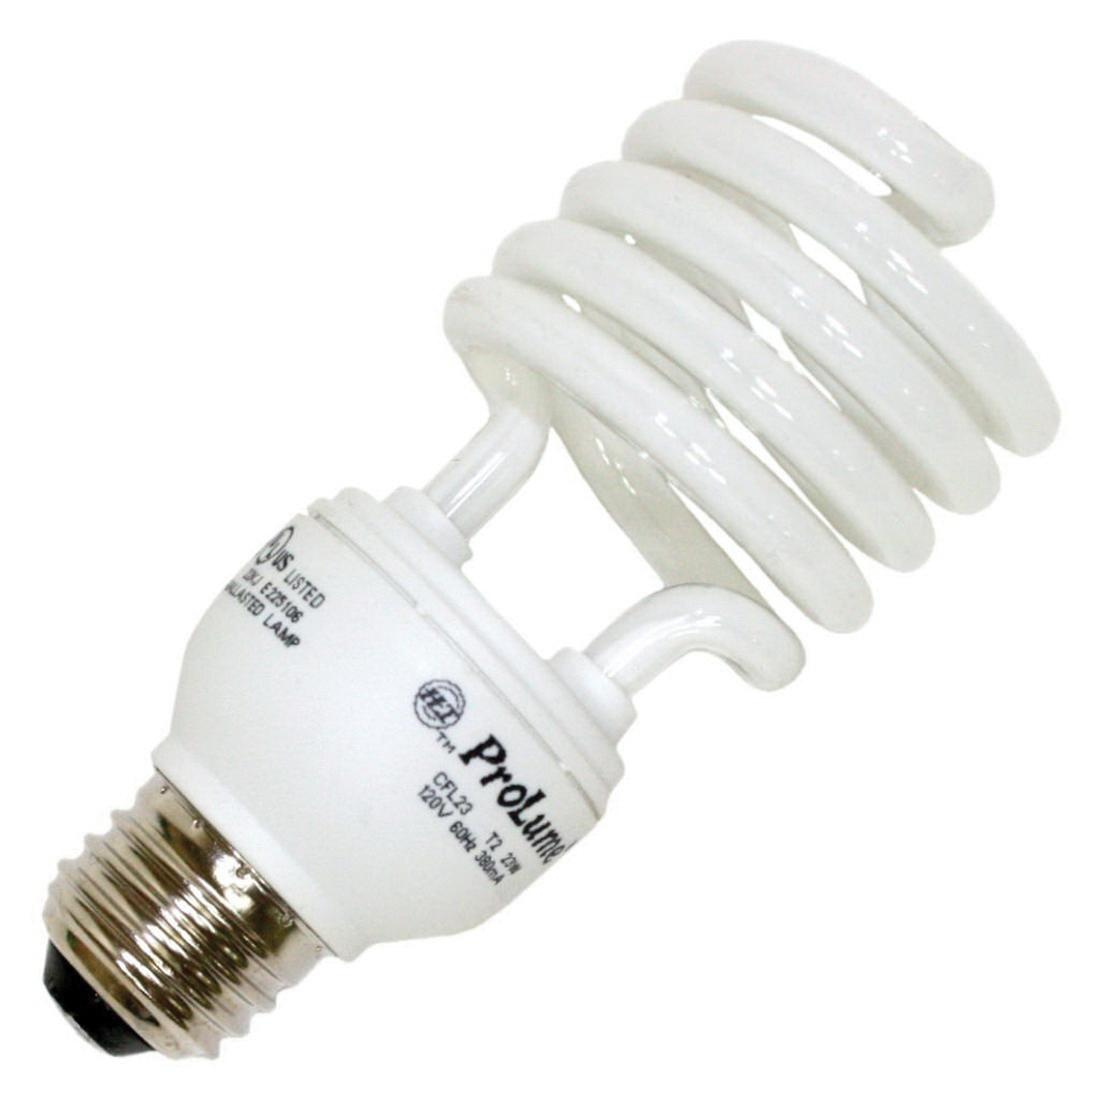 Halco Lighting 45077 T2 Spiral Compact Fluorescent Lamp 23 Watt E26 ...